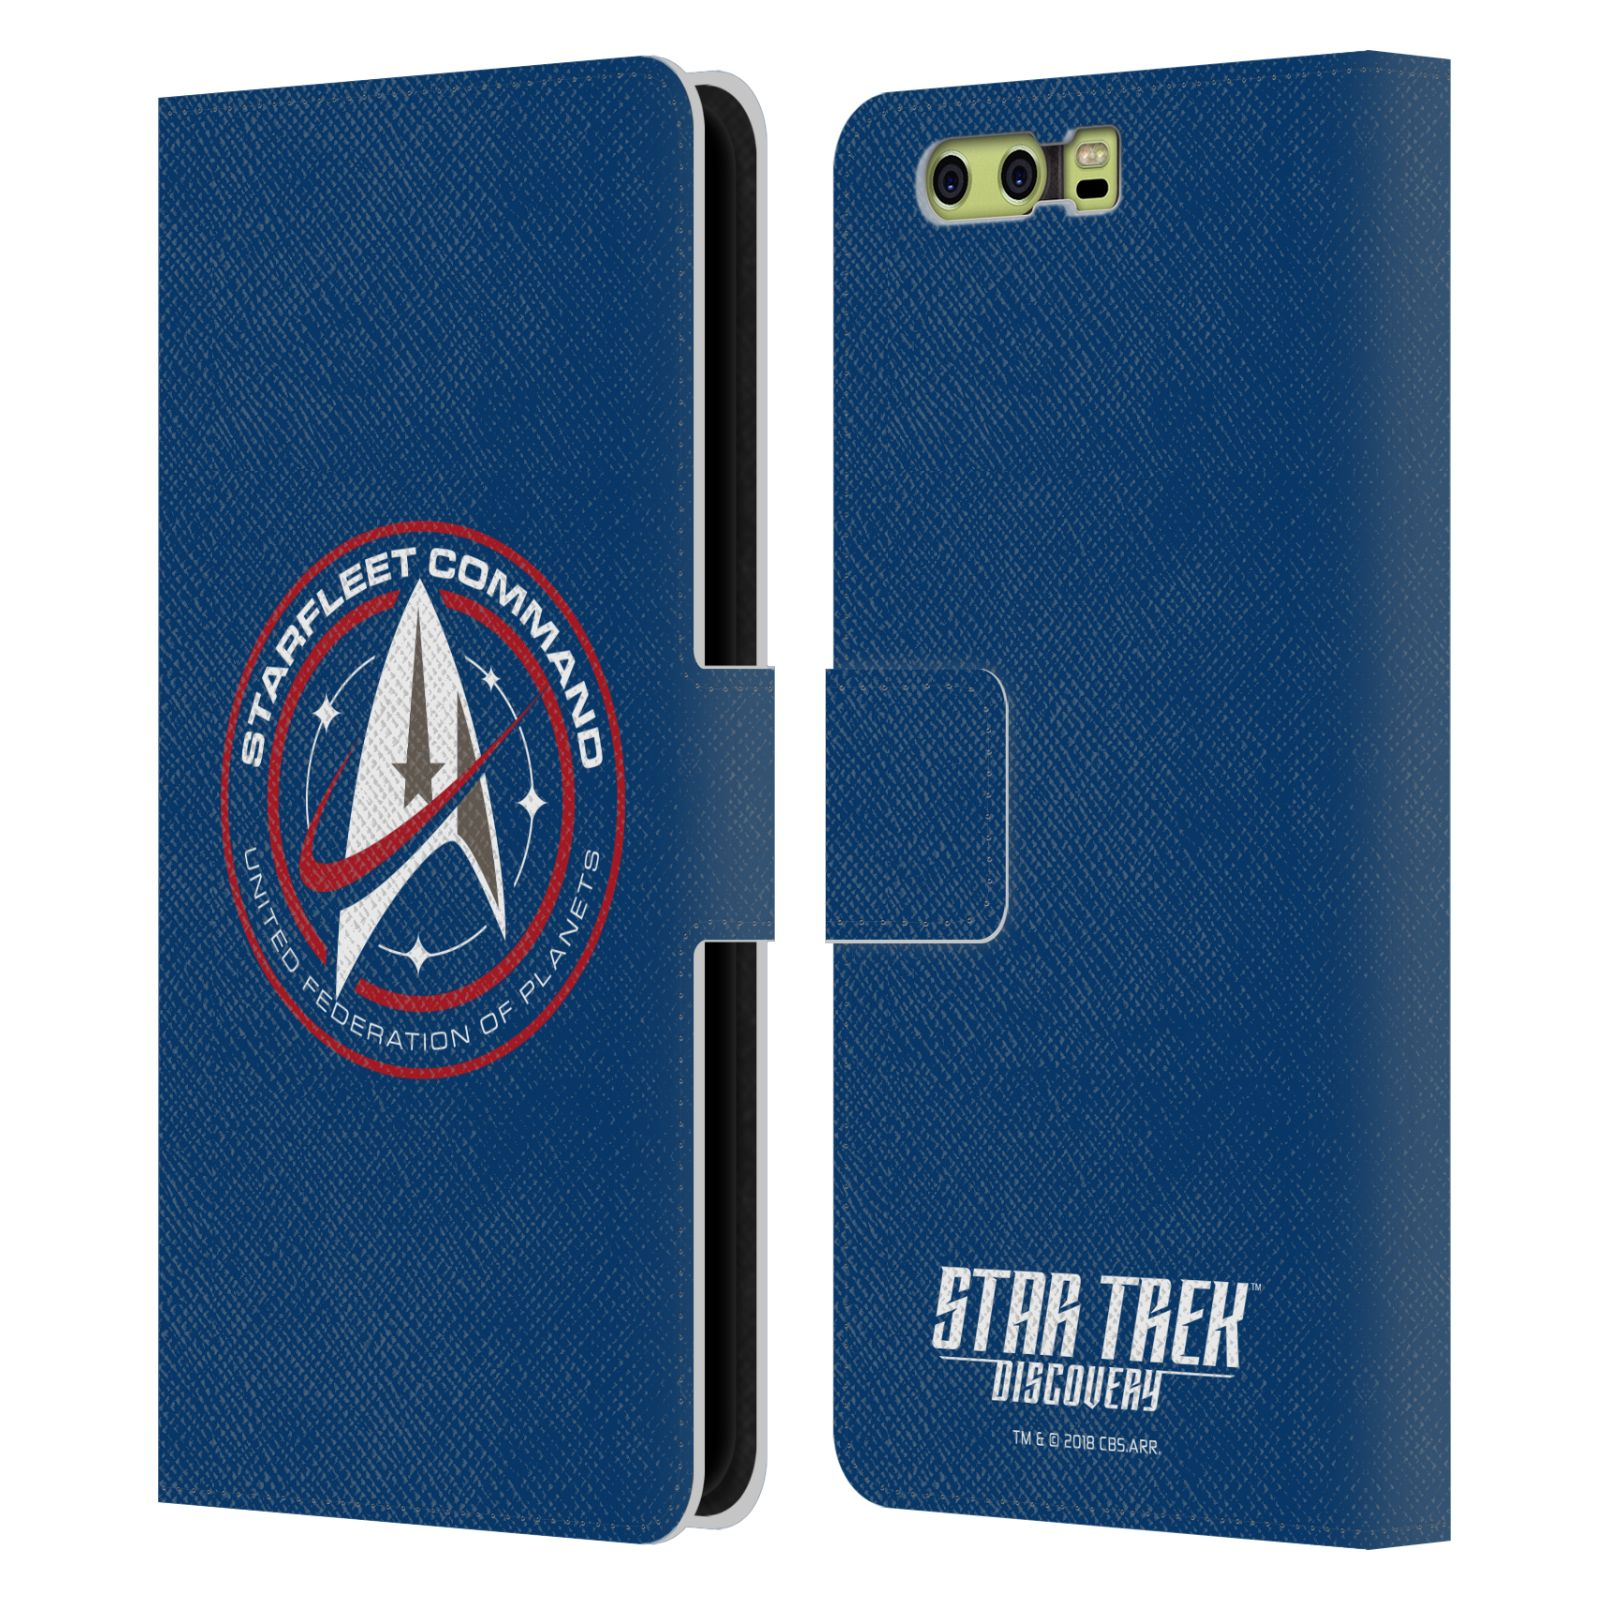 OFFICIAL-STAR-TREK-DISCOVERY-BADGES-LEATHER-BOOK-WALLET-CASE-FOR-HUAWEI-PHONES